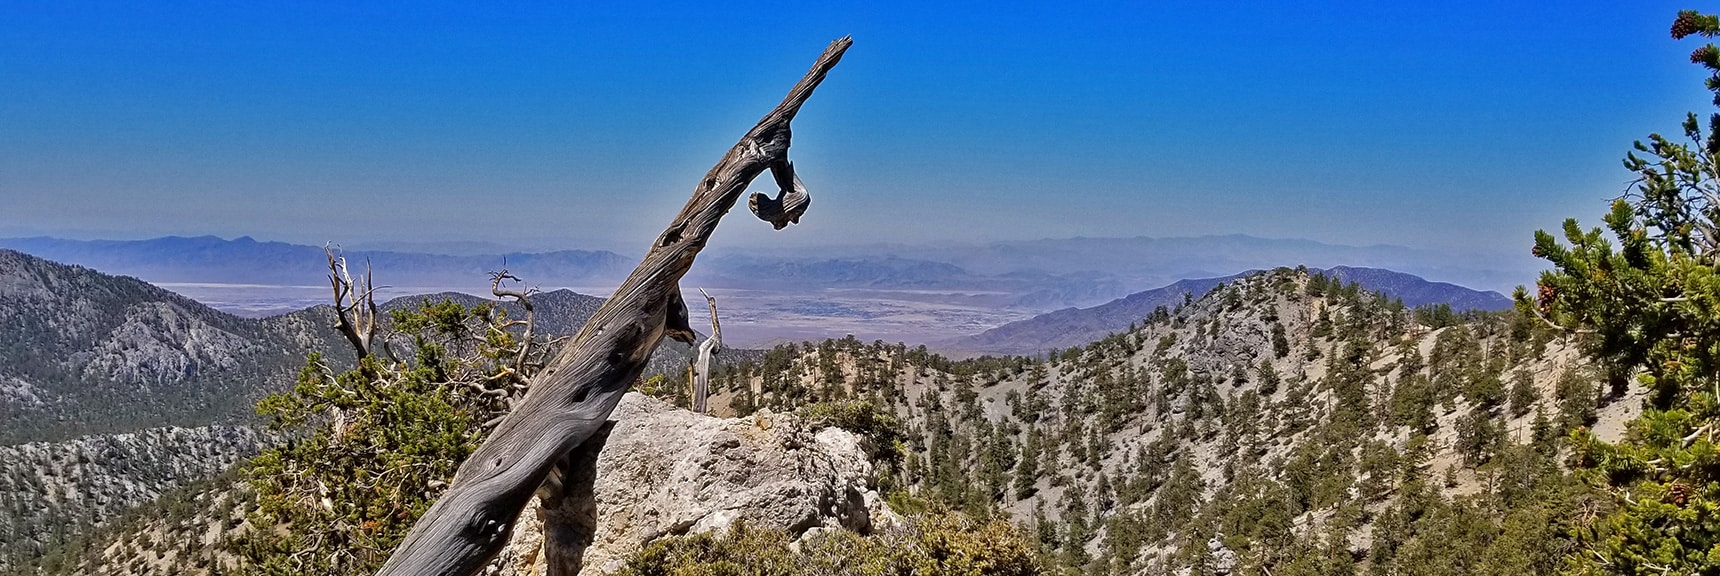 Pahrump Valley with Telescope Peak Faint in Far Background to Right of Branch | Base of McFarland Peak via Bristlecone Pine Trail and Bonanza Trail | Lee Canyon | Spring Mountains, Nevada